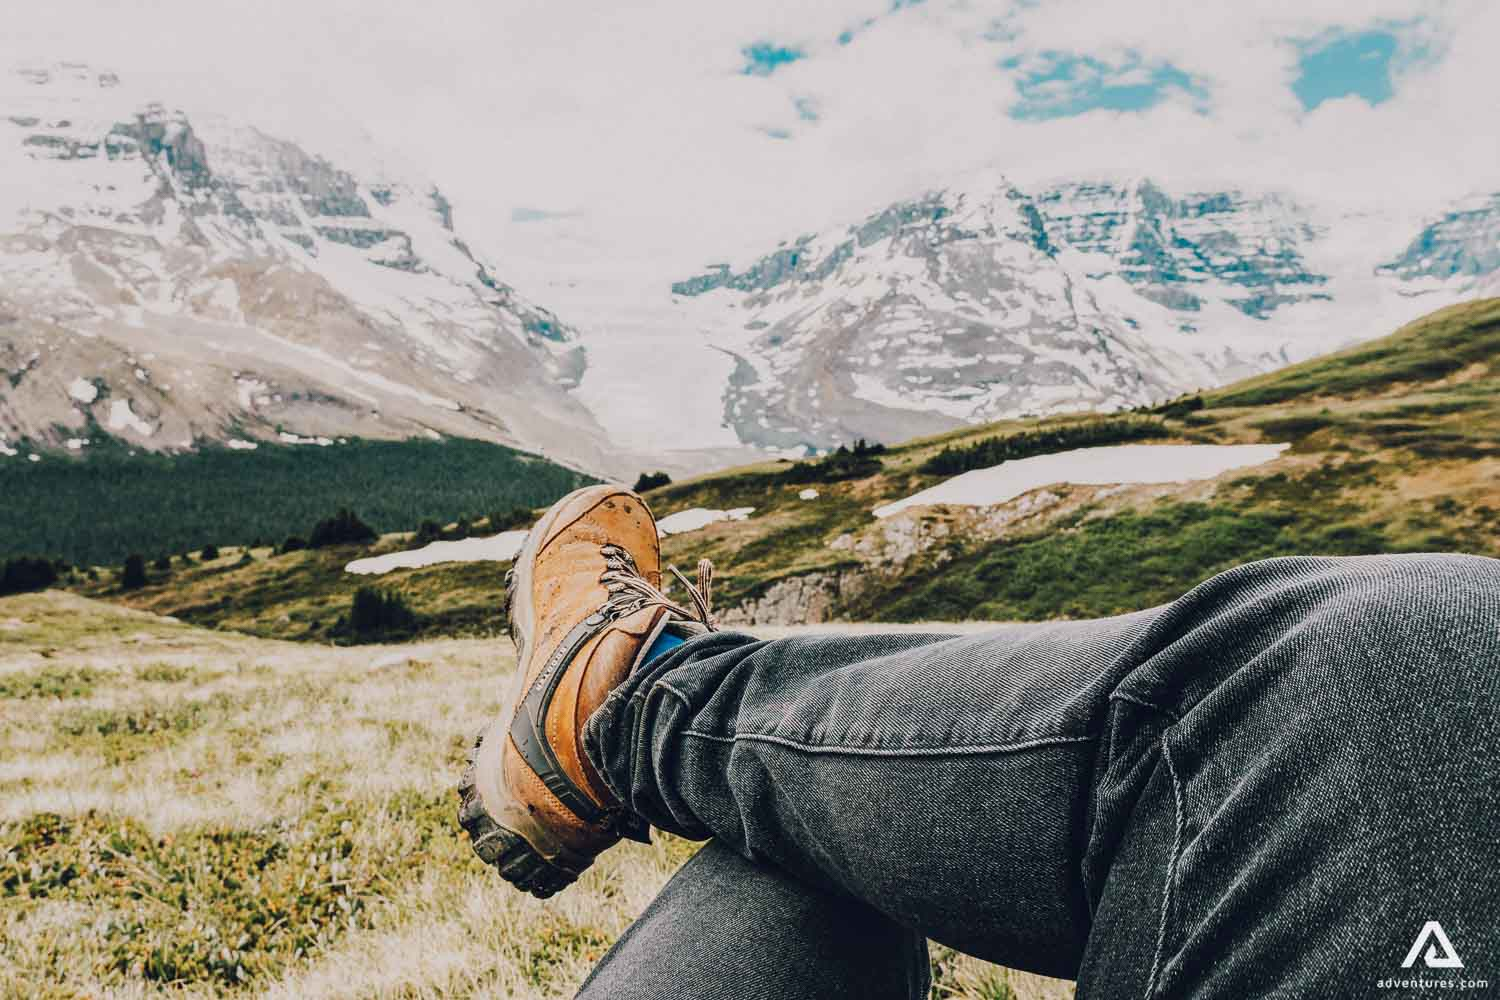 Taking a rest with mountain view